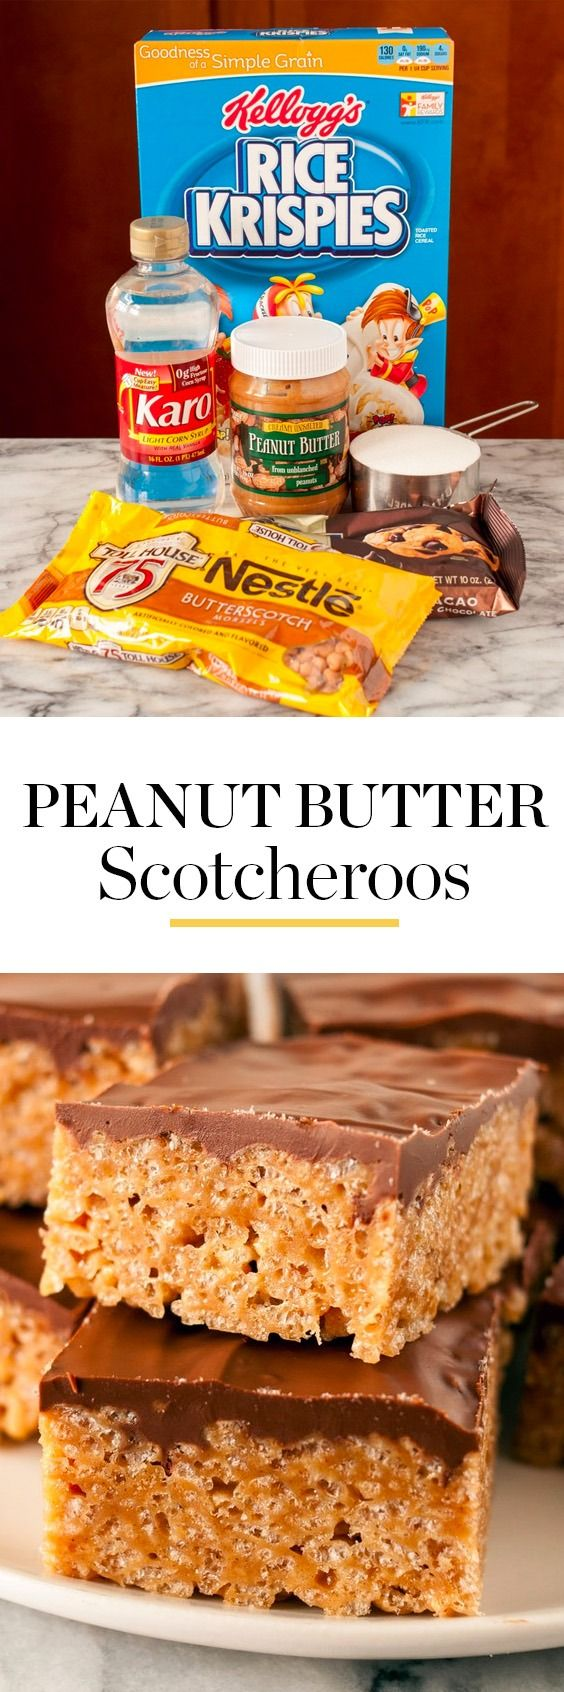 The BEST Peanut Butter Scotcheroos Recipe. Made with rice krispies (or chex, special k, cornflakes, or cheerios), semi sweet chocolate chips, butterscotch chips, corn syrup, and peanut butter. These soft, gooey, chewy no bake sweets are perfect for holidays or parties! Perfect if you're looking for ideas for classic desserts that are fun for families with kids to make together.